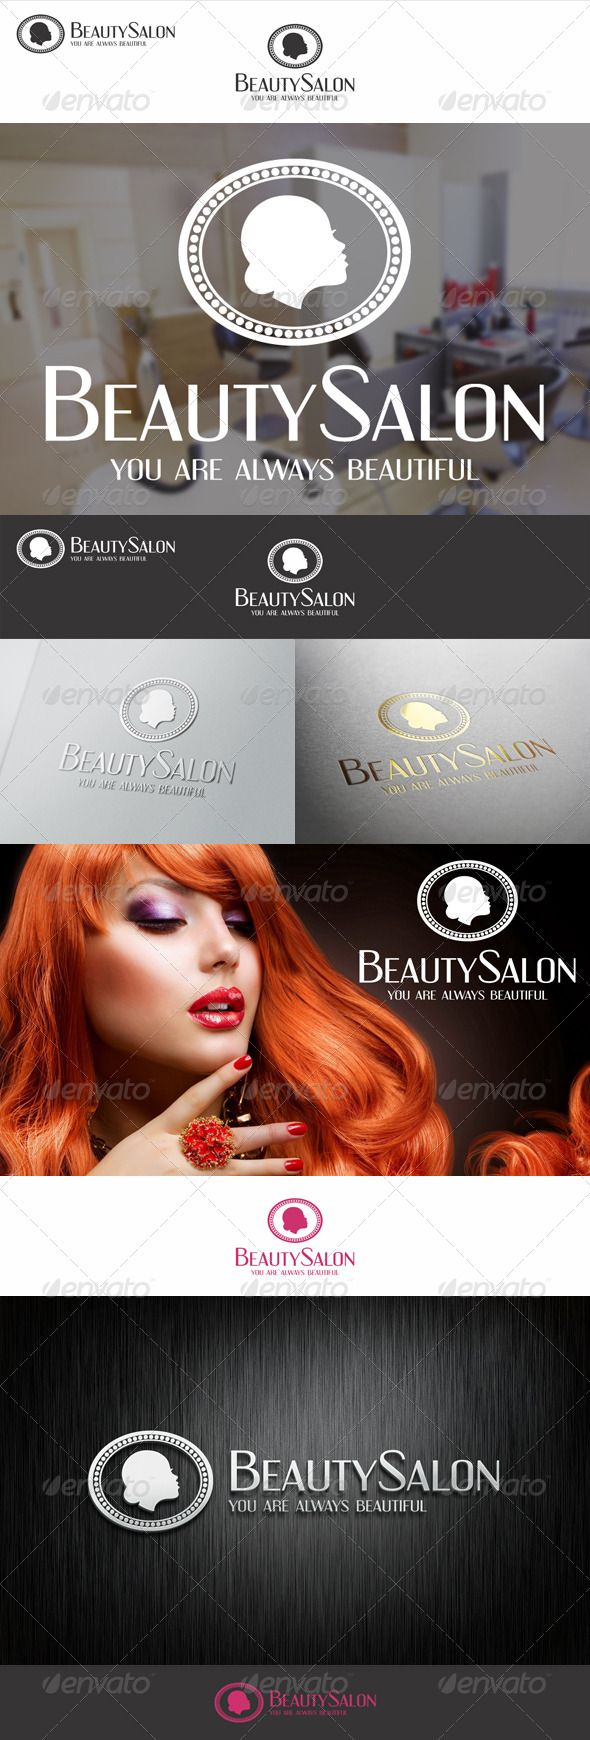 12 Best Images About Chapter 3 Your Professional Image On Pinterest Black Business Card Hair